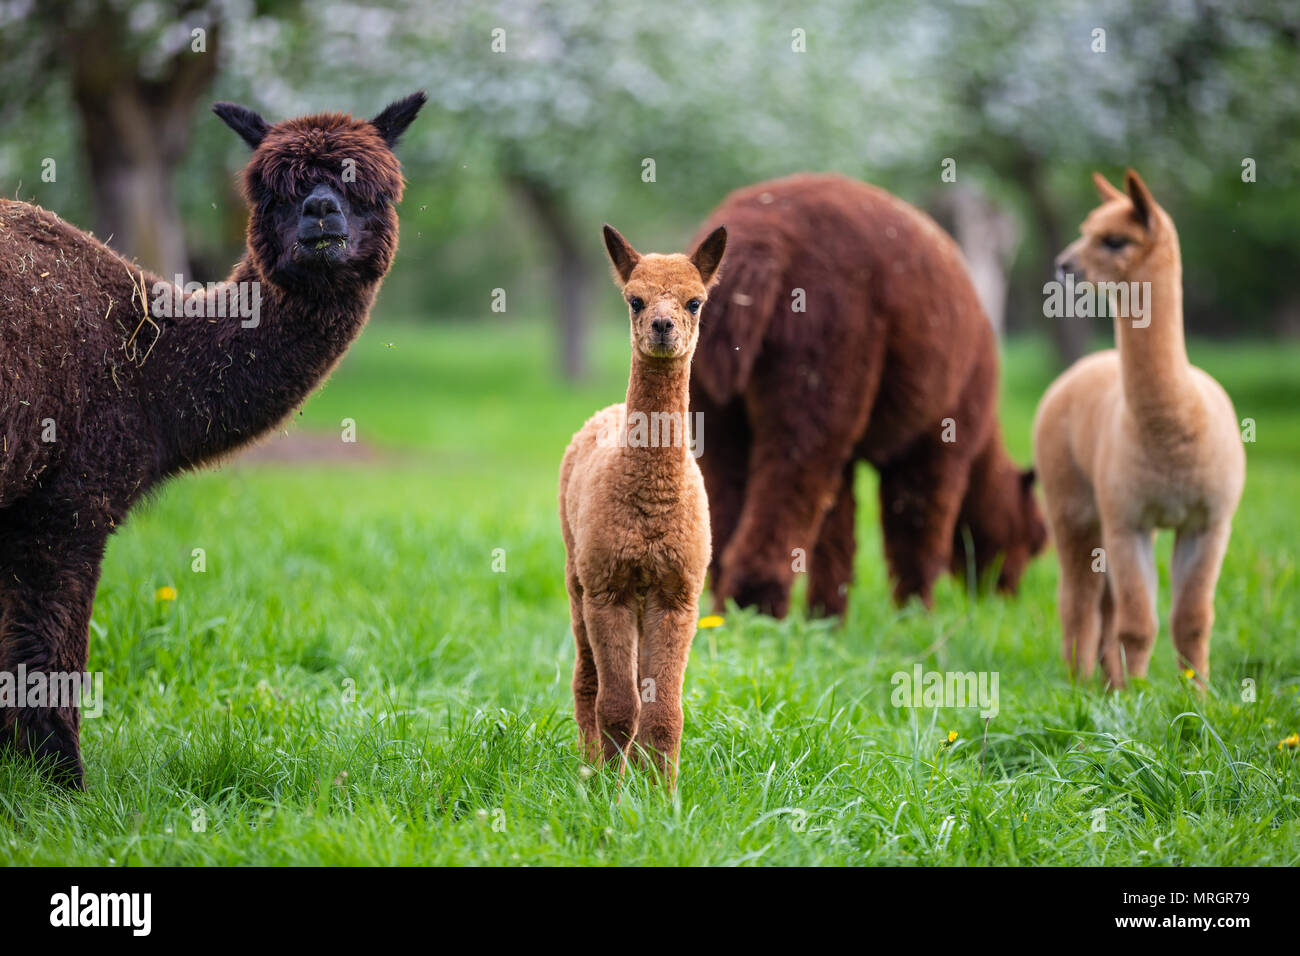 Alpacas with offspring, a South American mammal - Stock Image